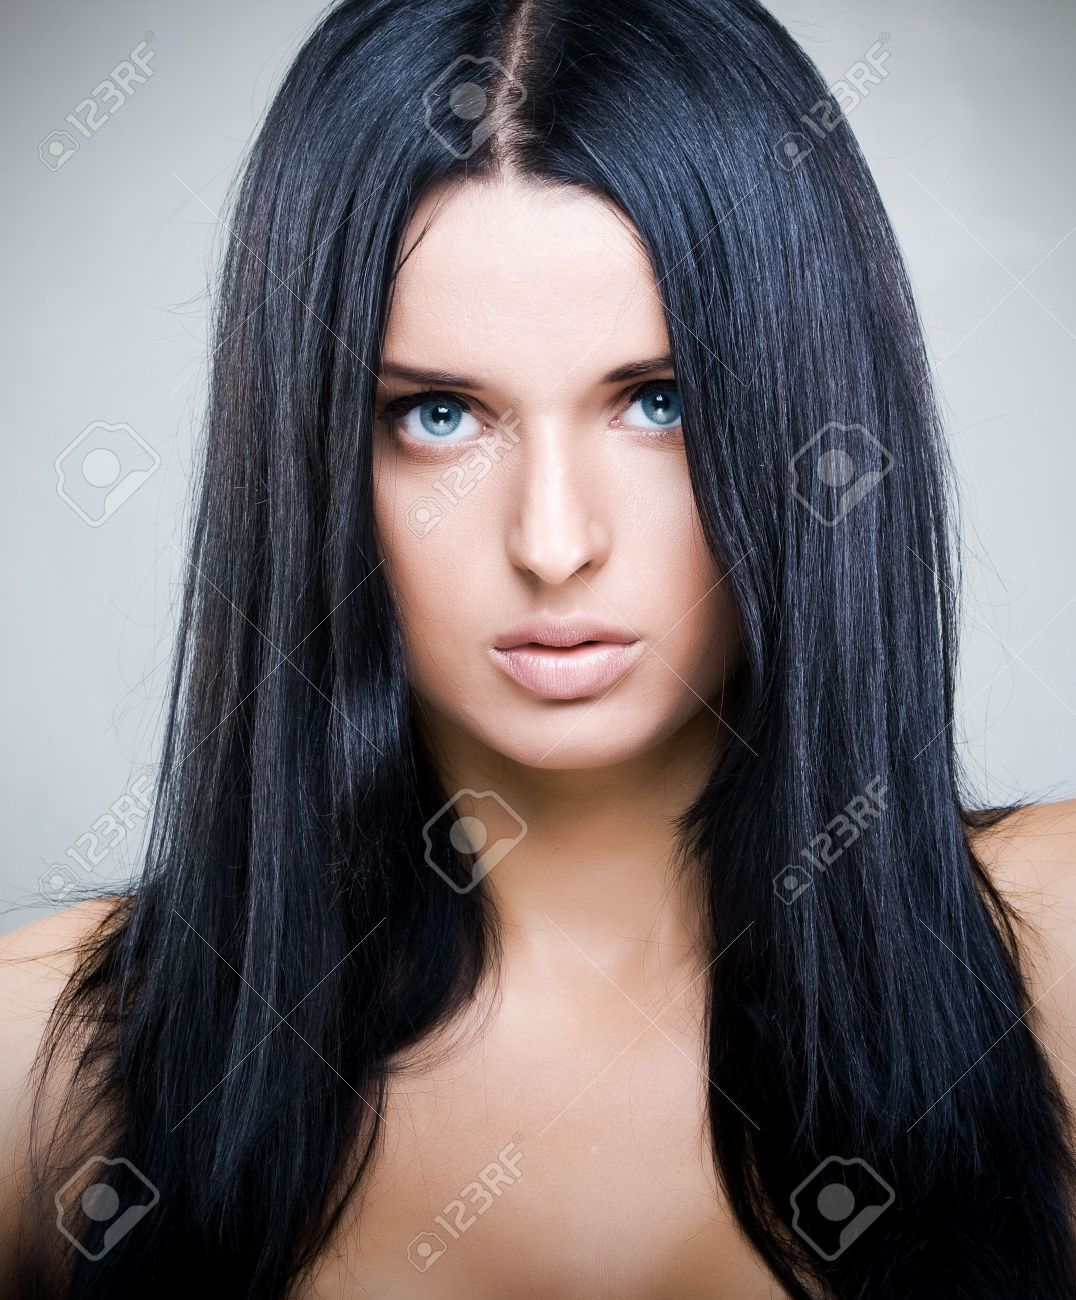 Fashion portrait of beautiful young woman with perfect black hair and full lips Stock Photo - 6246276